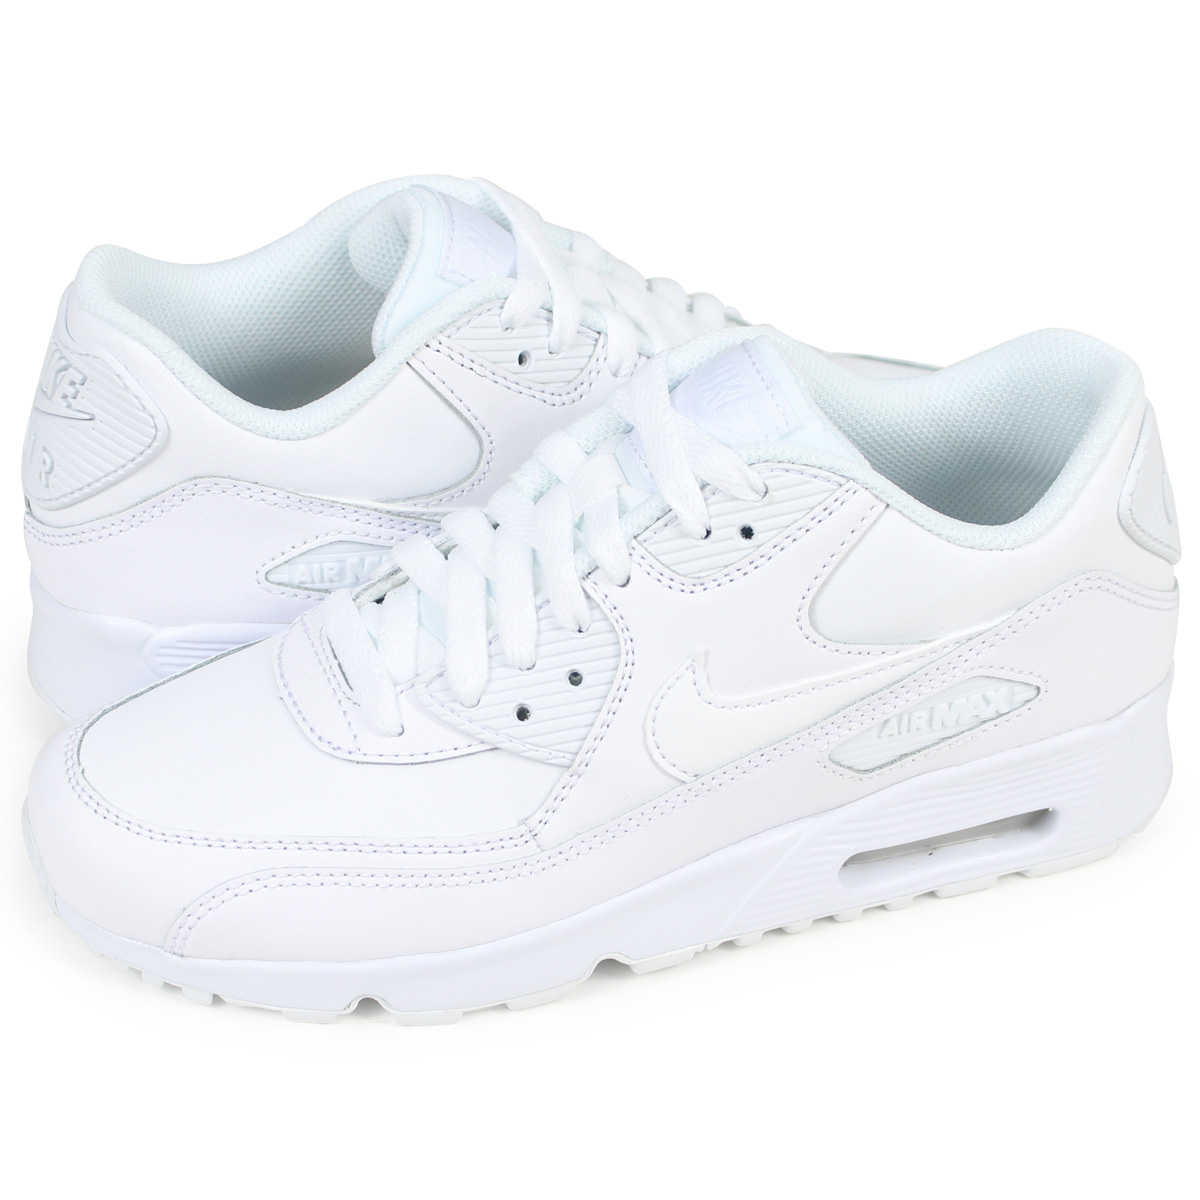 hot sale online b9355 68e77 Nike NIKE Air Max 90 Lady s sneakers AIR MAX 90 LEATHER GS 833,412-100 white  ...